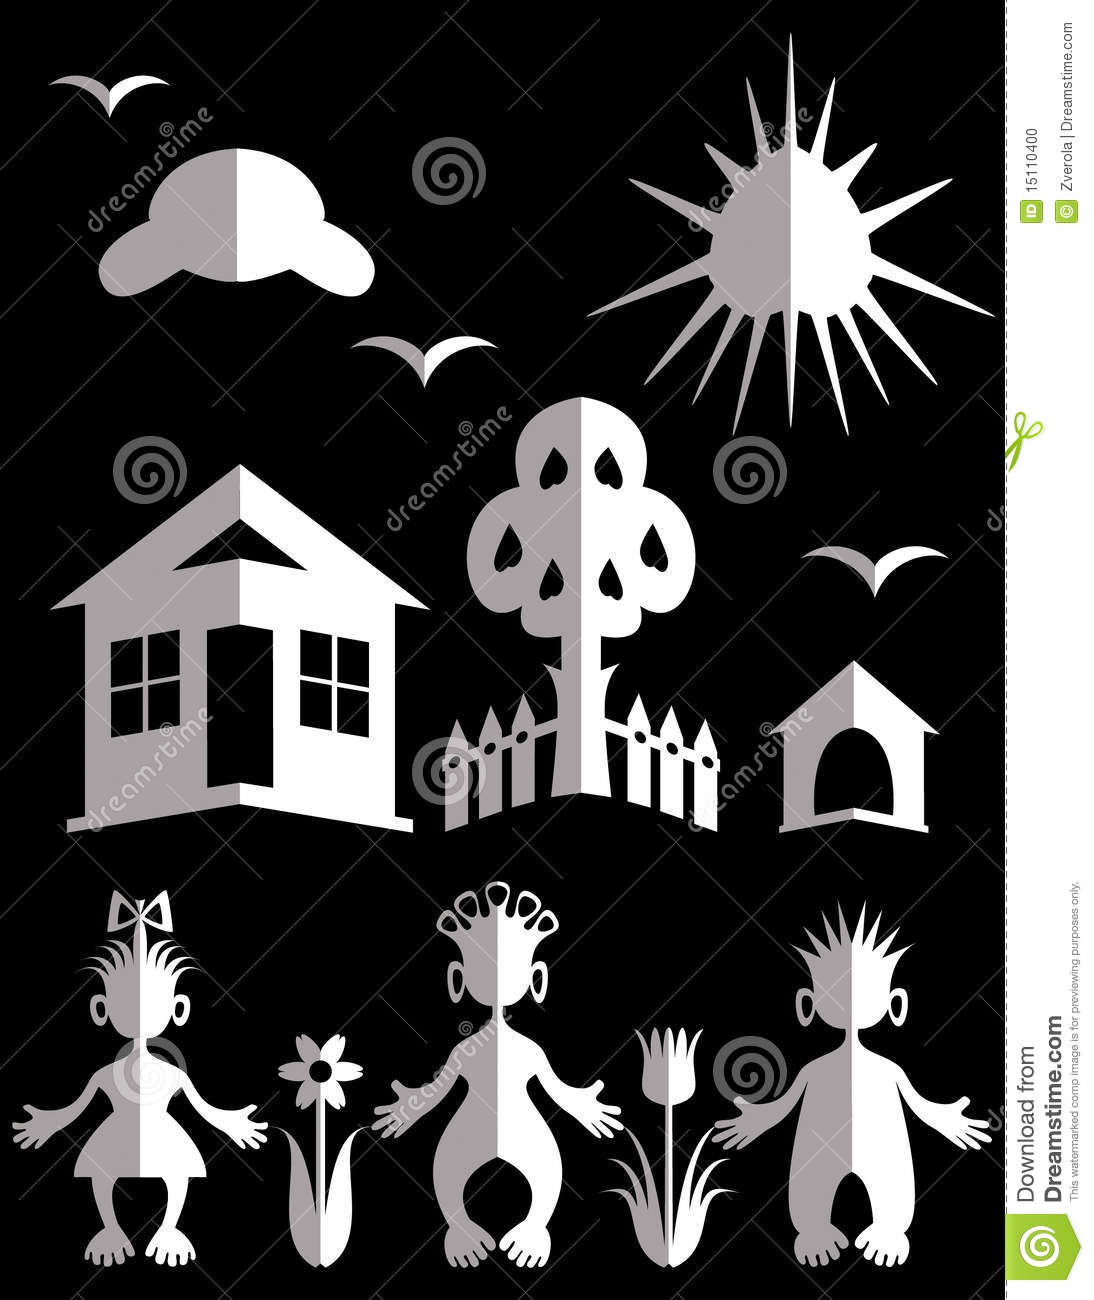 White Paper Doll Cut Outs Stock Photo Image 15110400